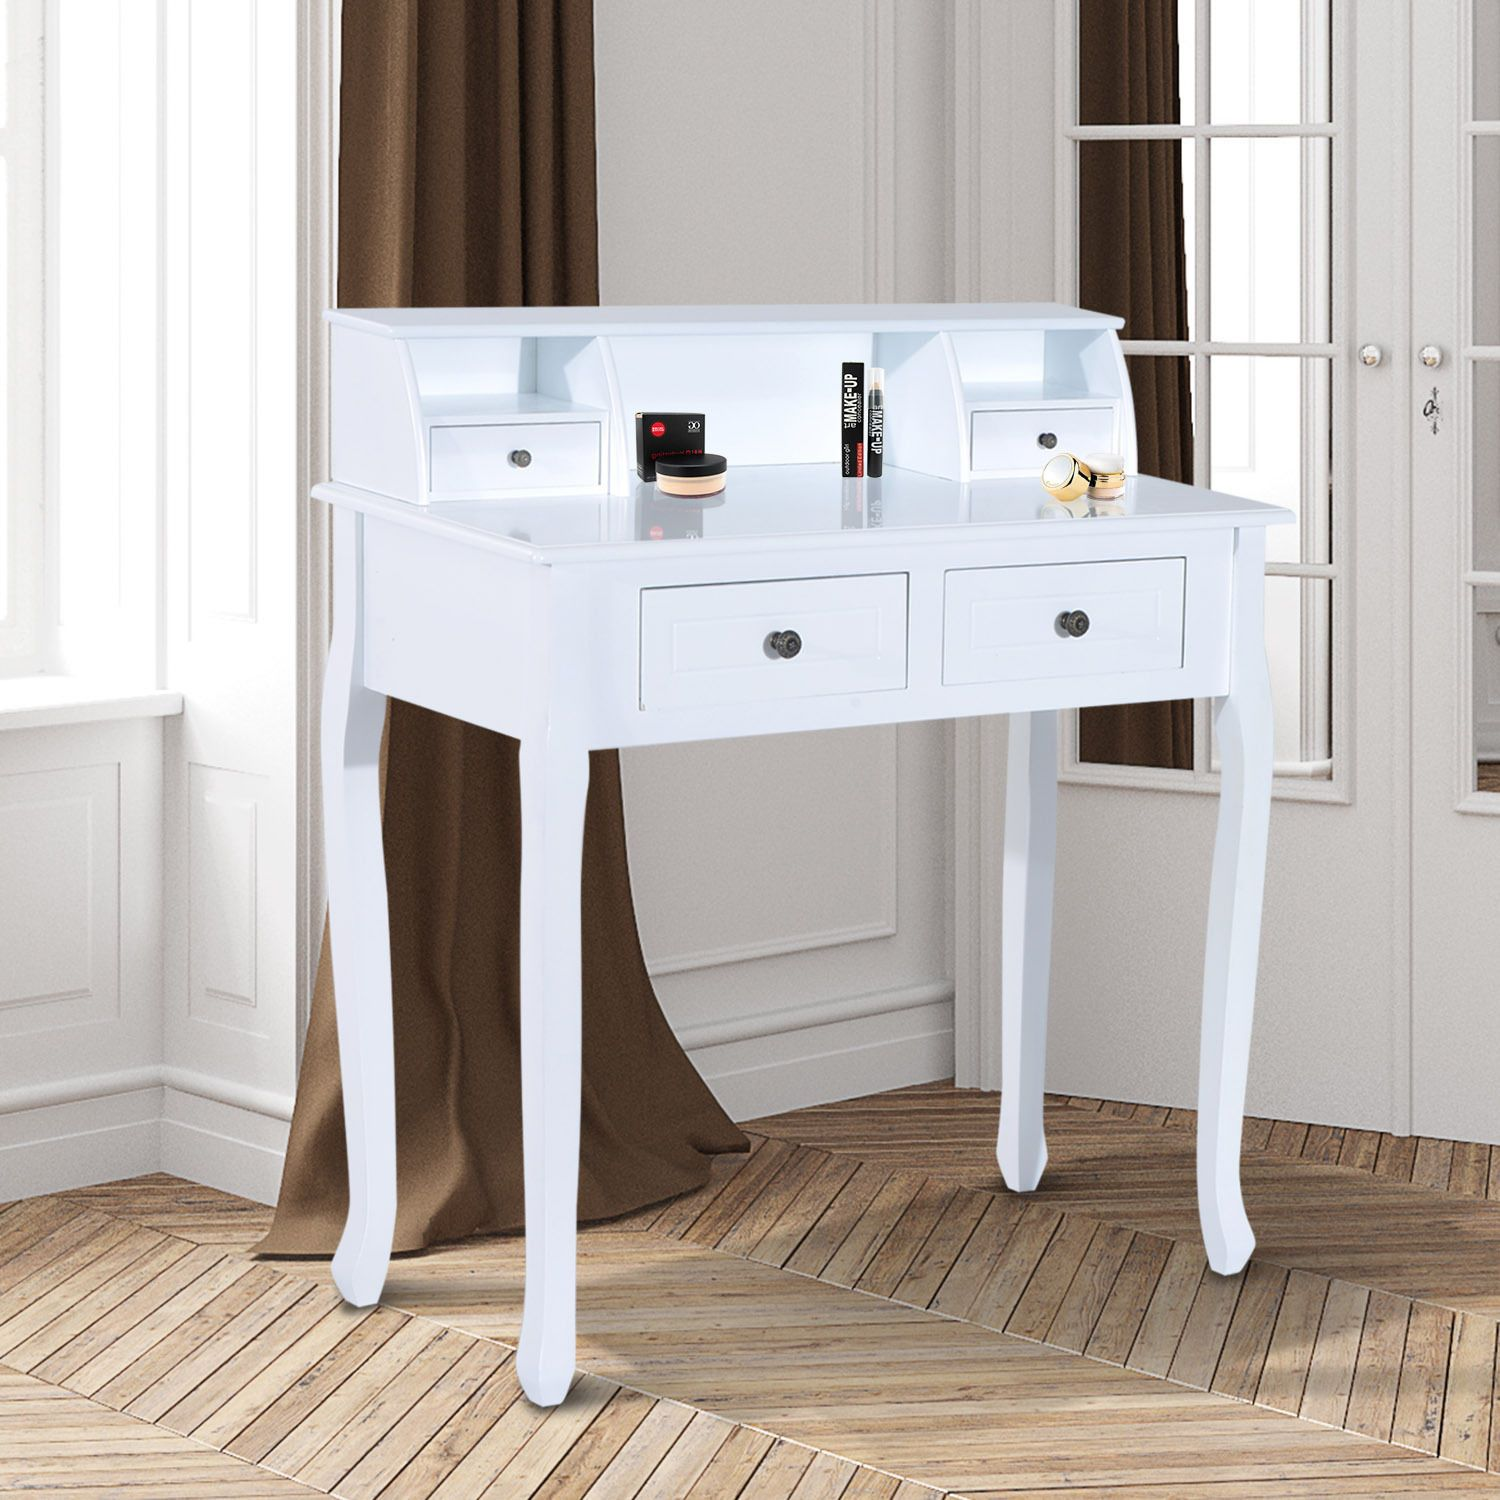 of vanity picture dressing stunning with furniture and ideas modern drawers inspiration drawer vintage mirrored icon u table sasg mirror